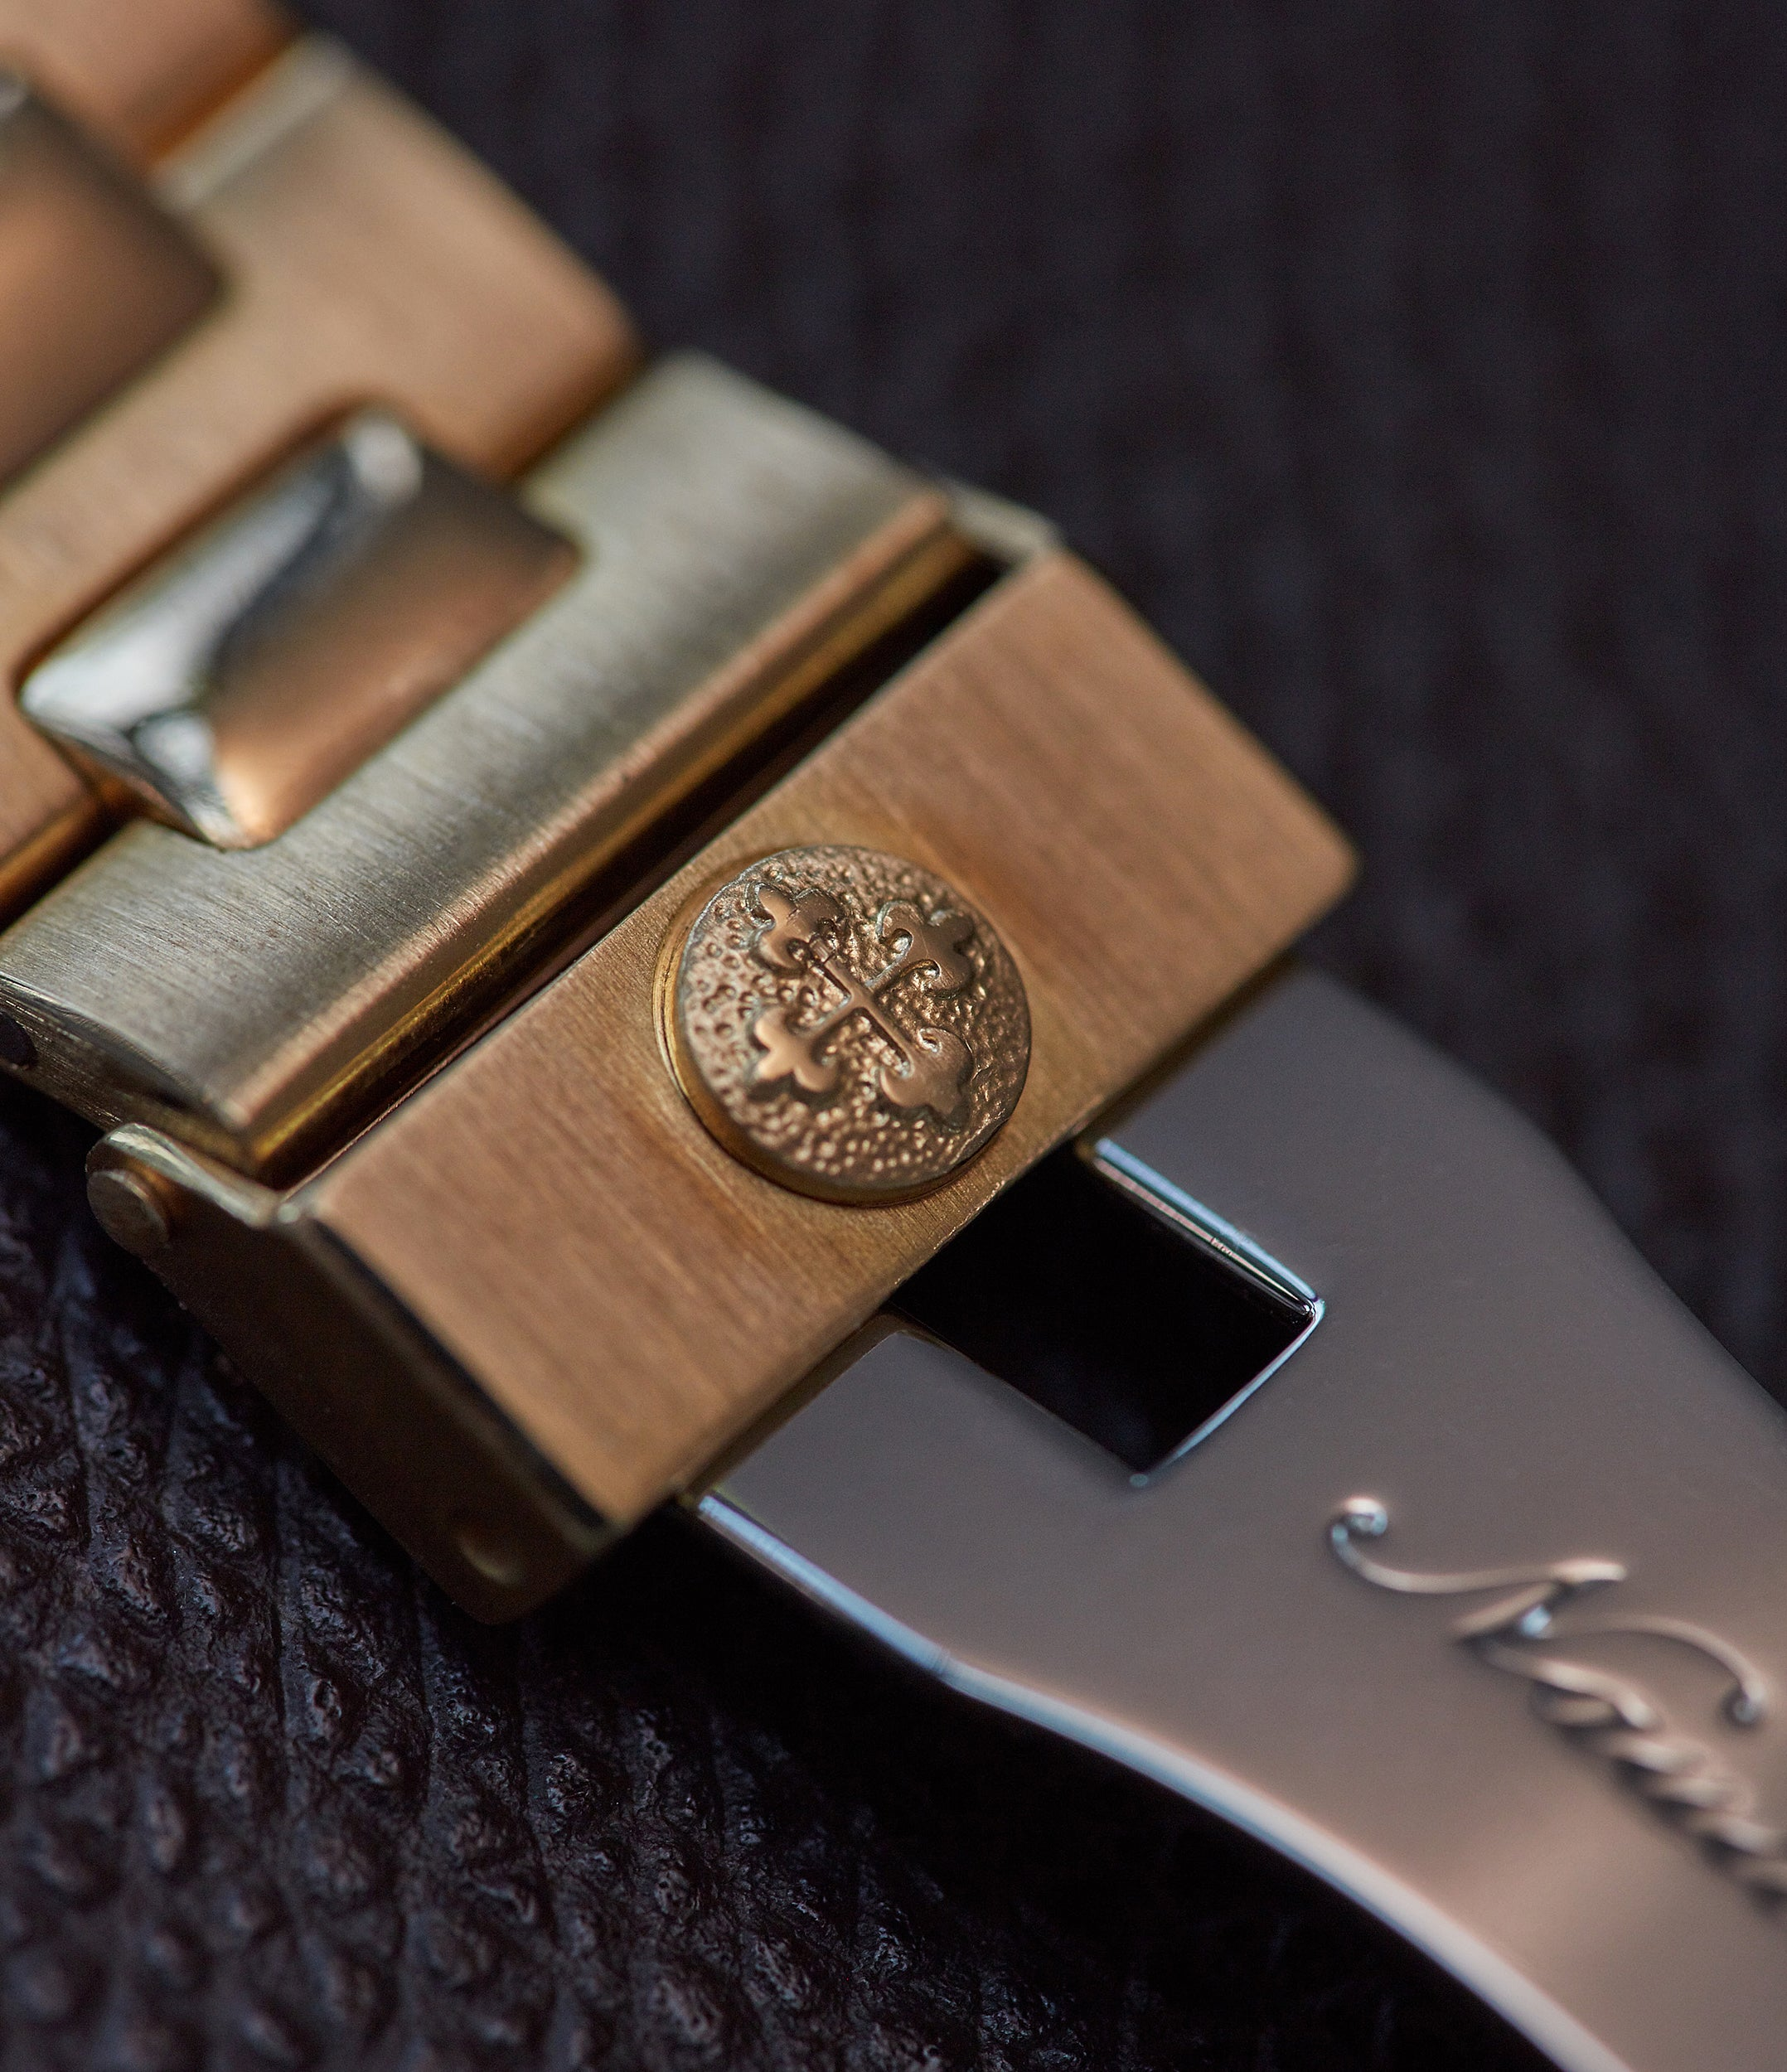 Patek Philippe Nautilus 3800 buckle saftey clasp in yellow gold from A Collected Man London